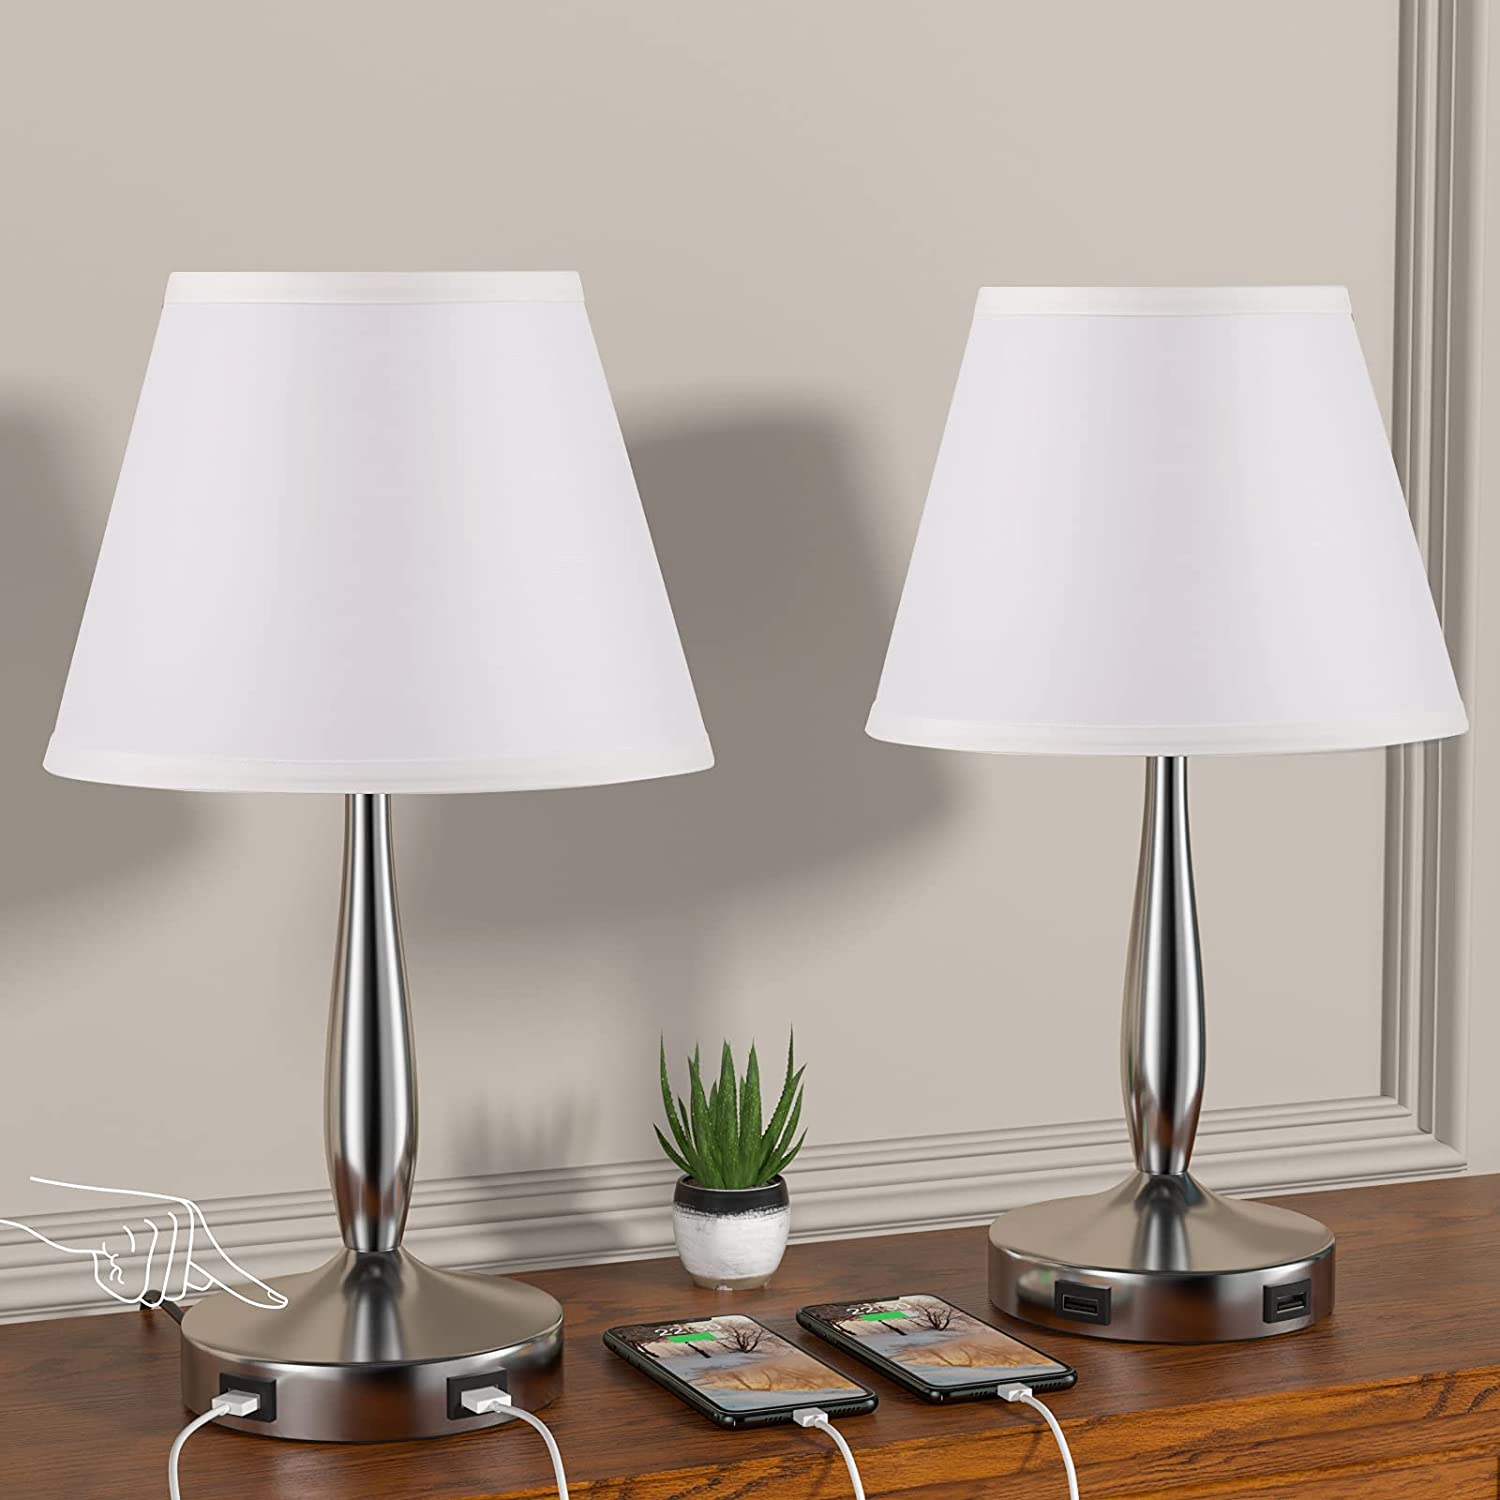 Touch Table Clearance Max 87% OFF SALE Limited time Lamps Set of 2 Dimmable DICOOOL Bedside 3-Way Lamp